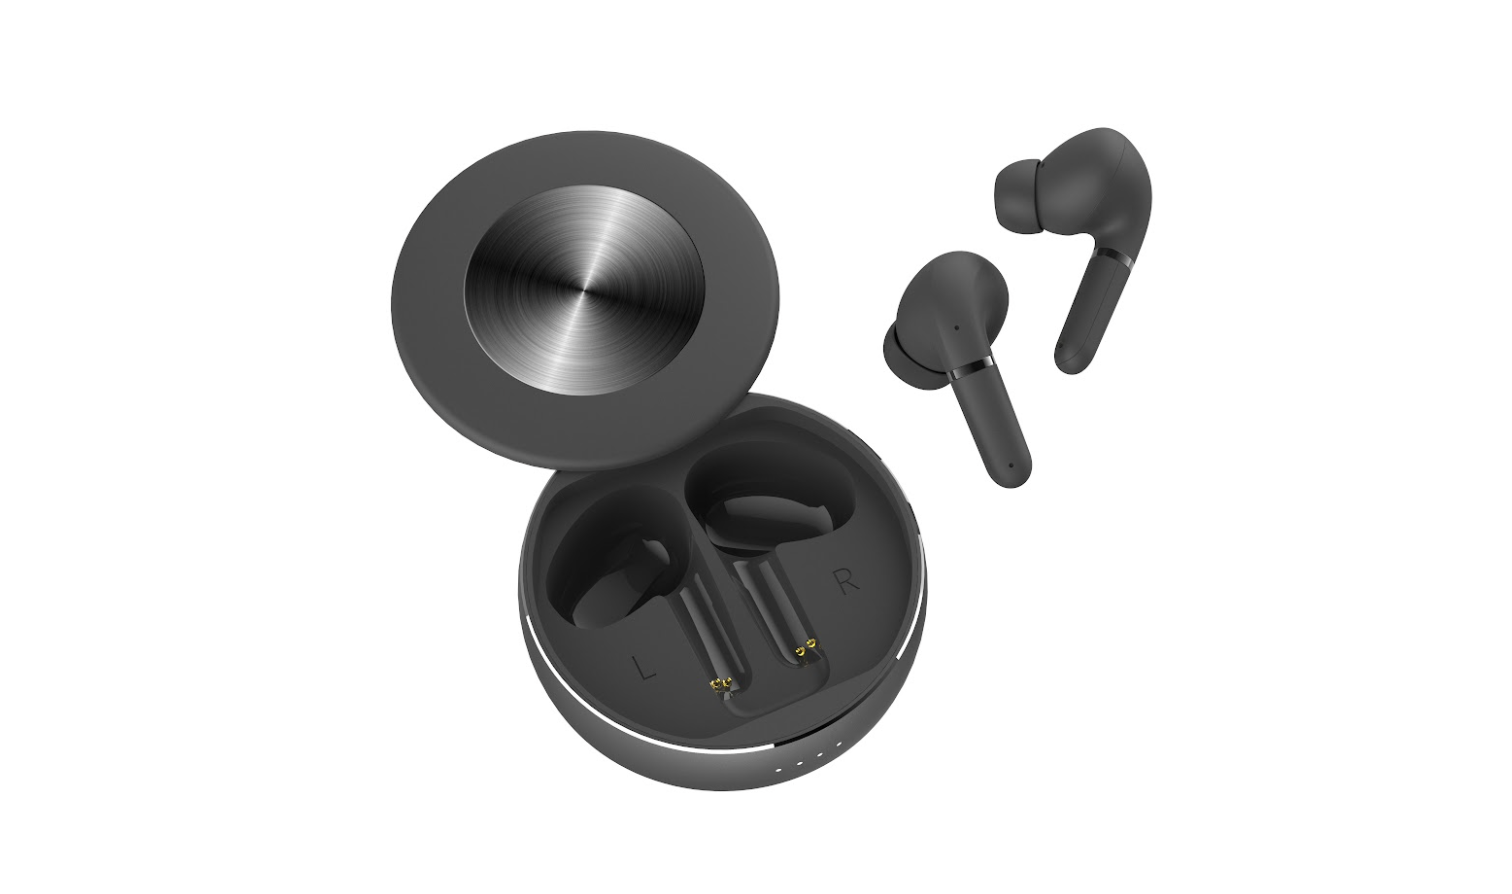 LIBMING 6 Mic Noise-Cancelling Earbuds Introduce Extraordinary Listening Experiences